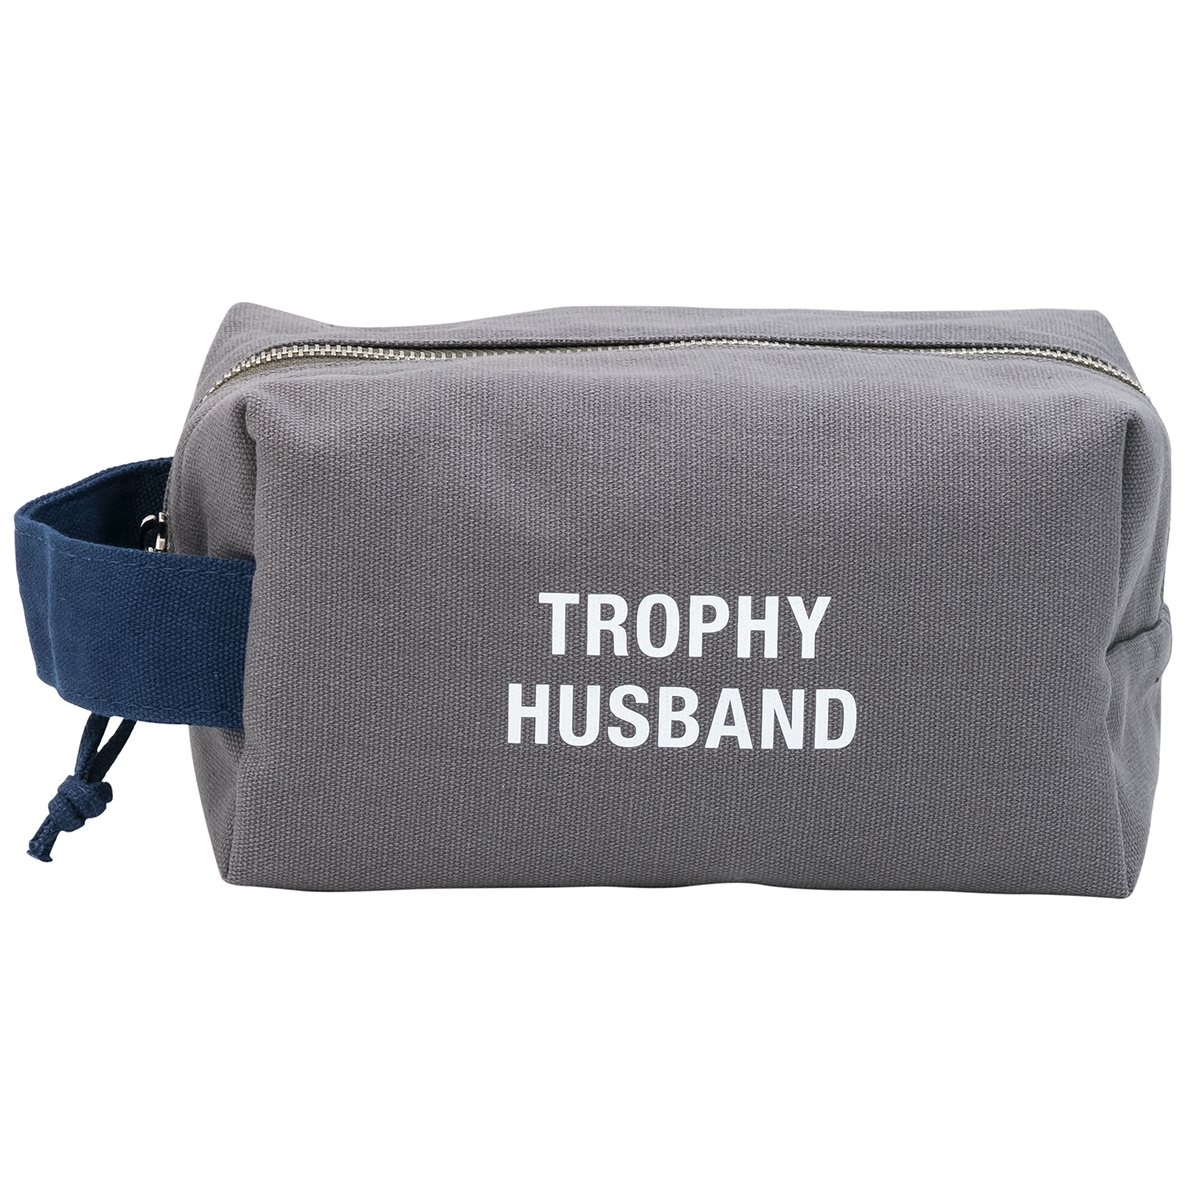 51021e4ed9 About Face Trophy Husband Multi Purpose Bag Gym Tote